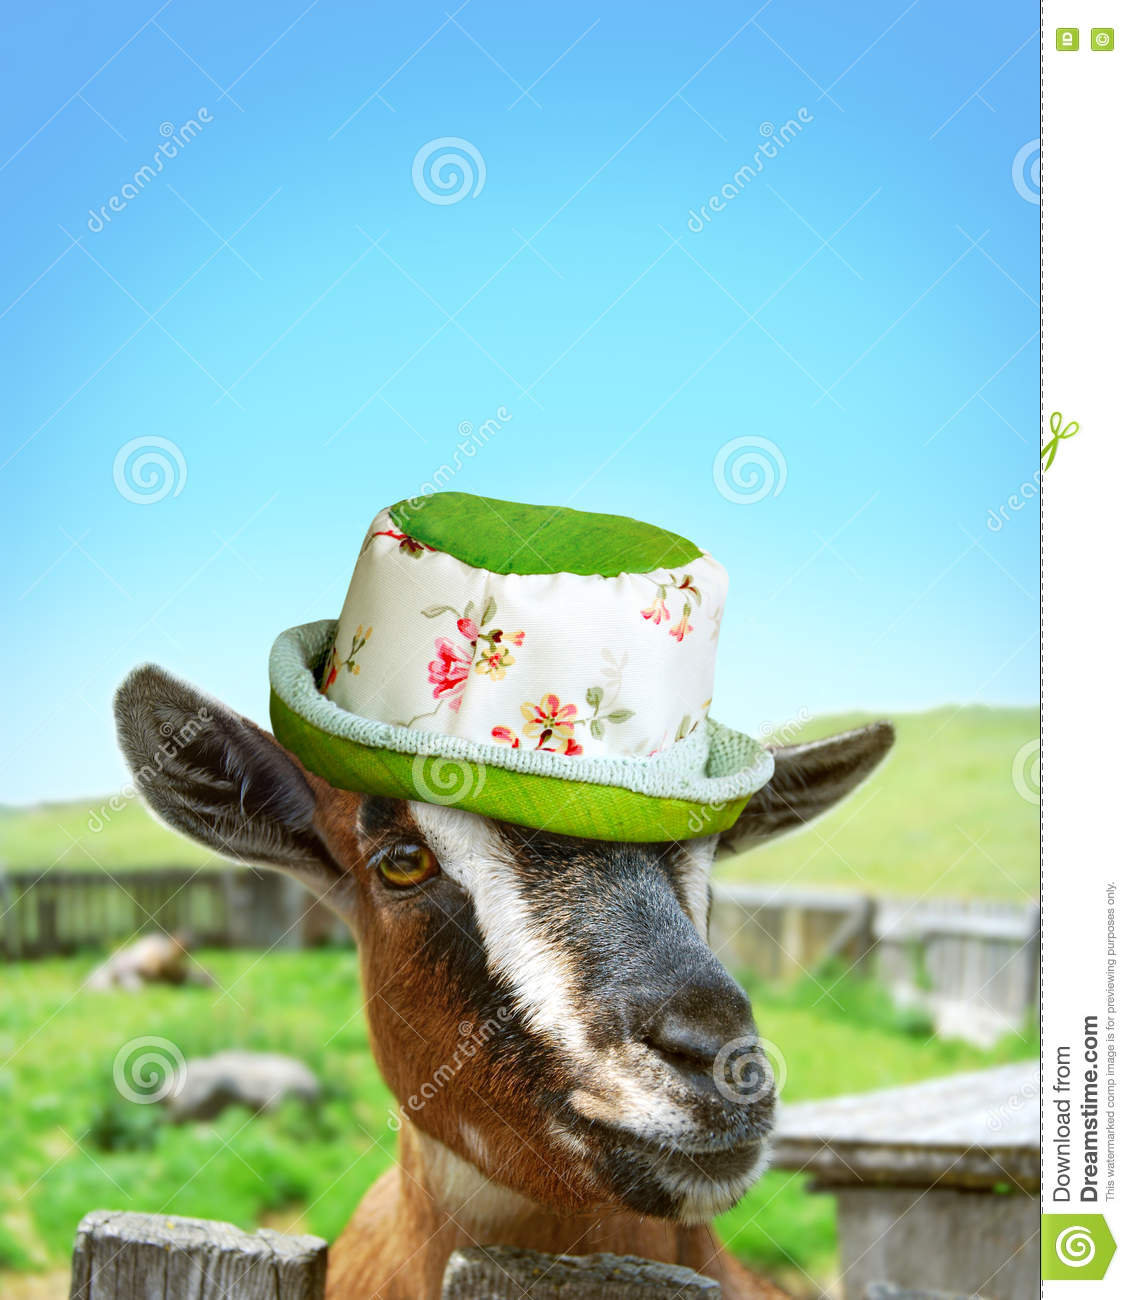 Goat with girly hat